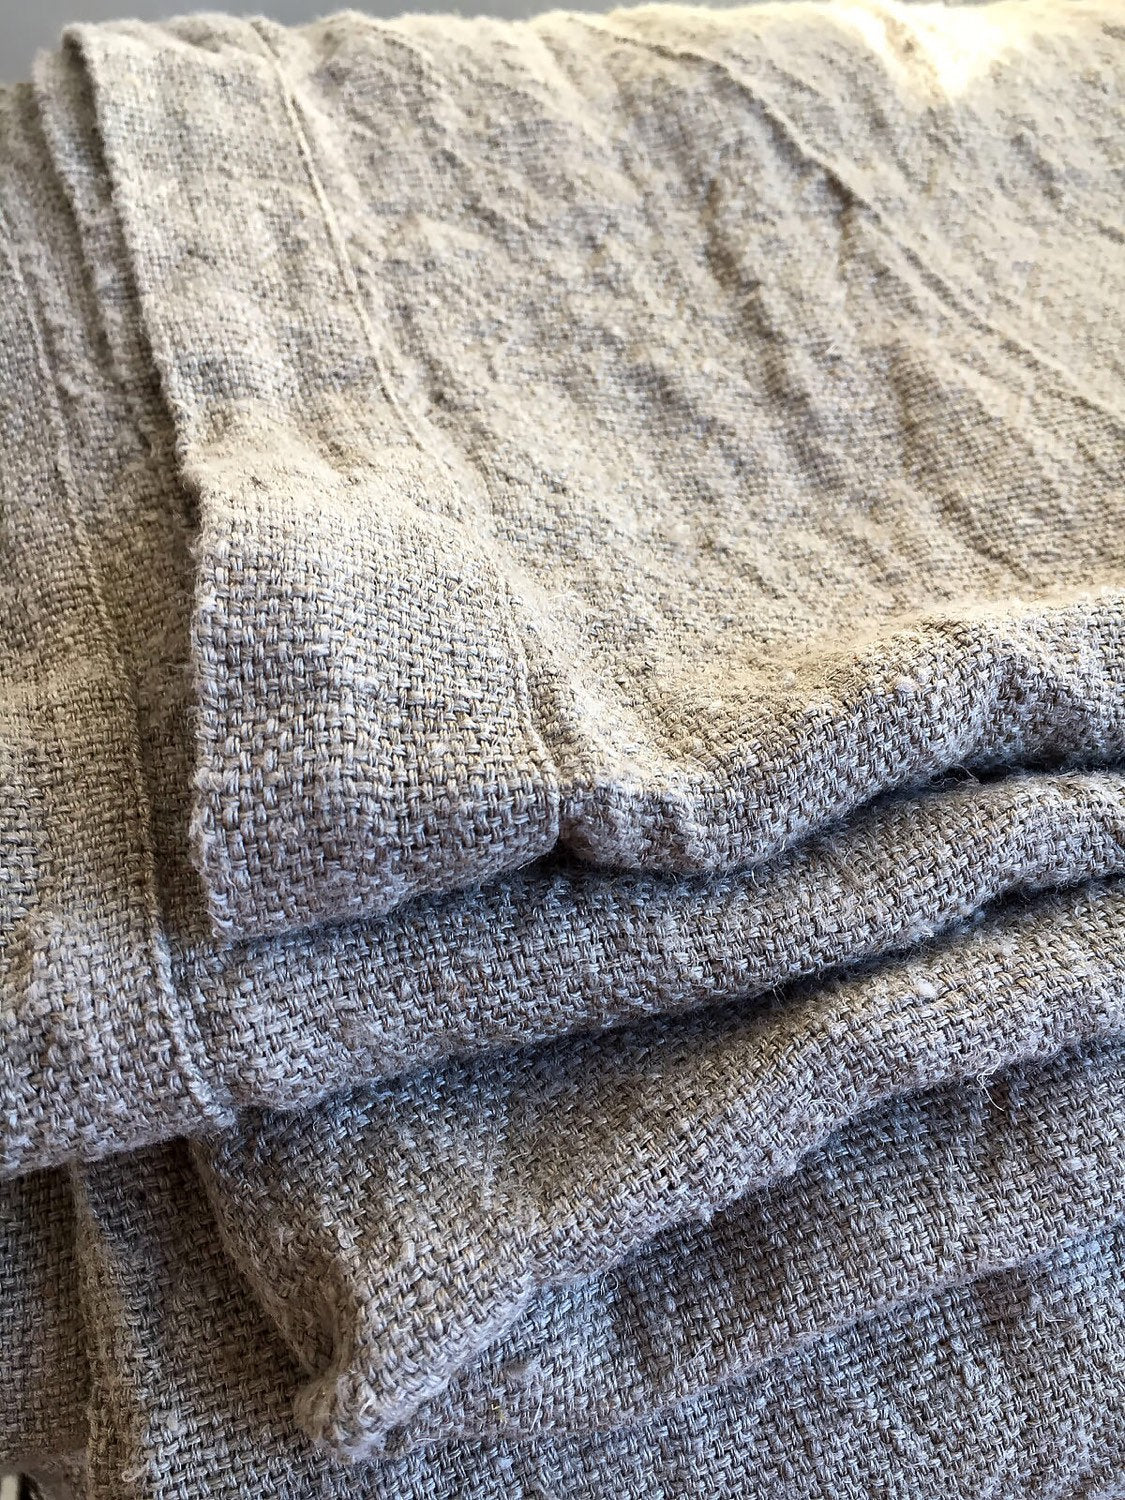 Linen bed cover, Rustic linen, Rustic blanket, linen throw, bed throw, rustic throw, natural bed covers, linen bedding, burlap bedding